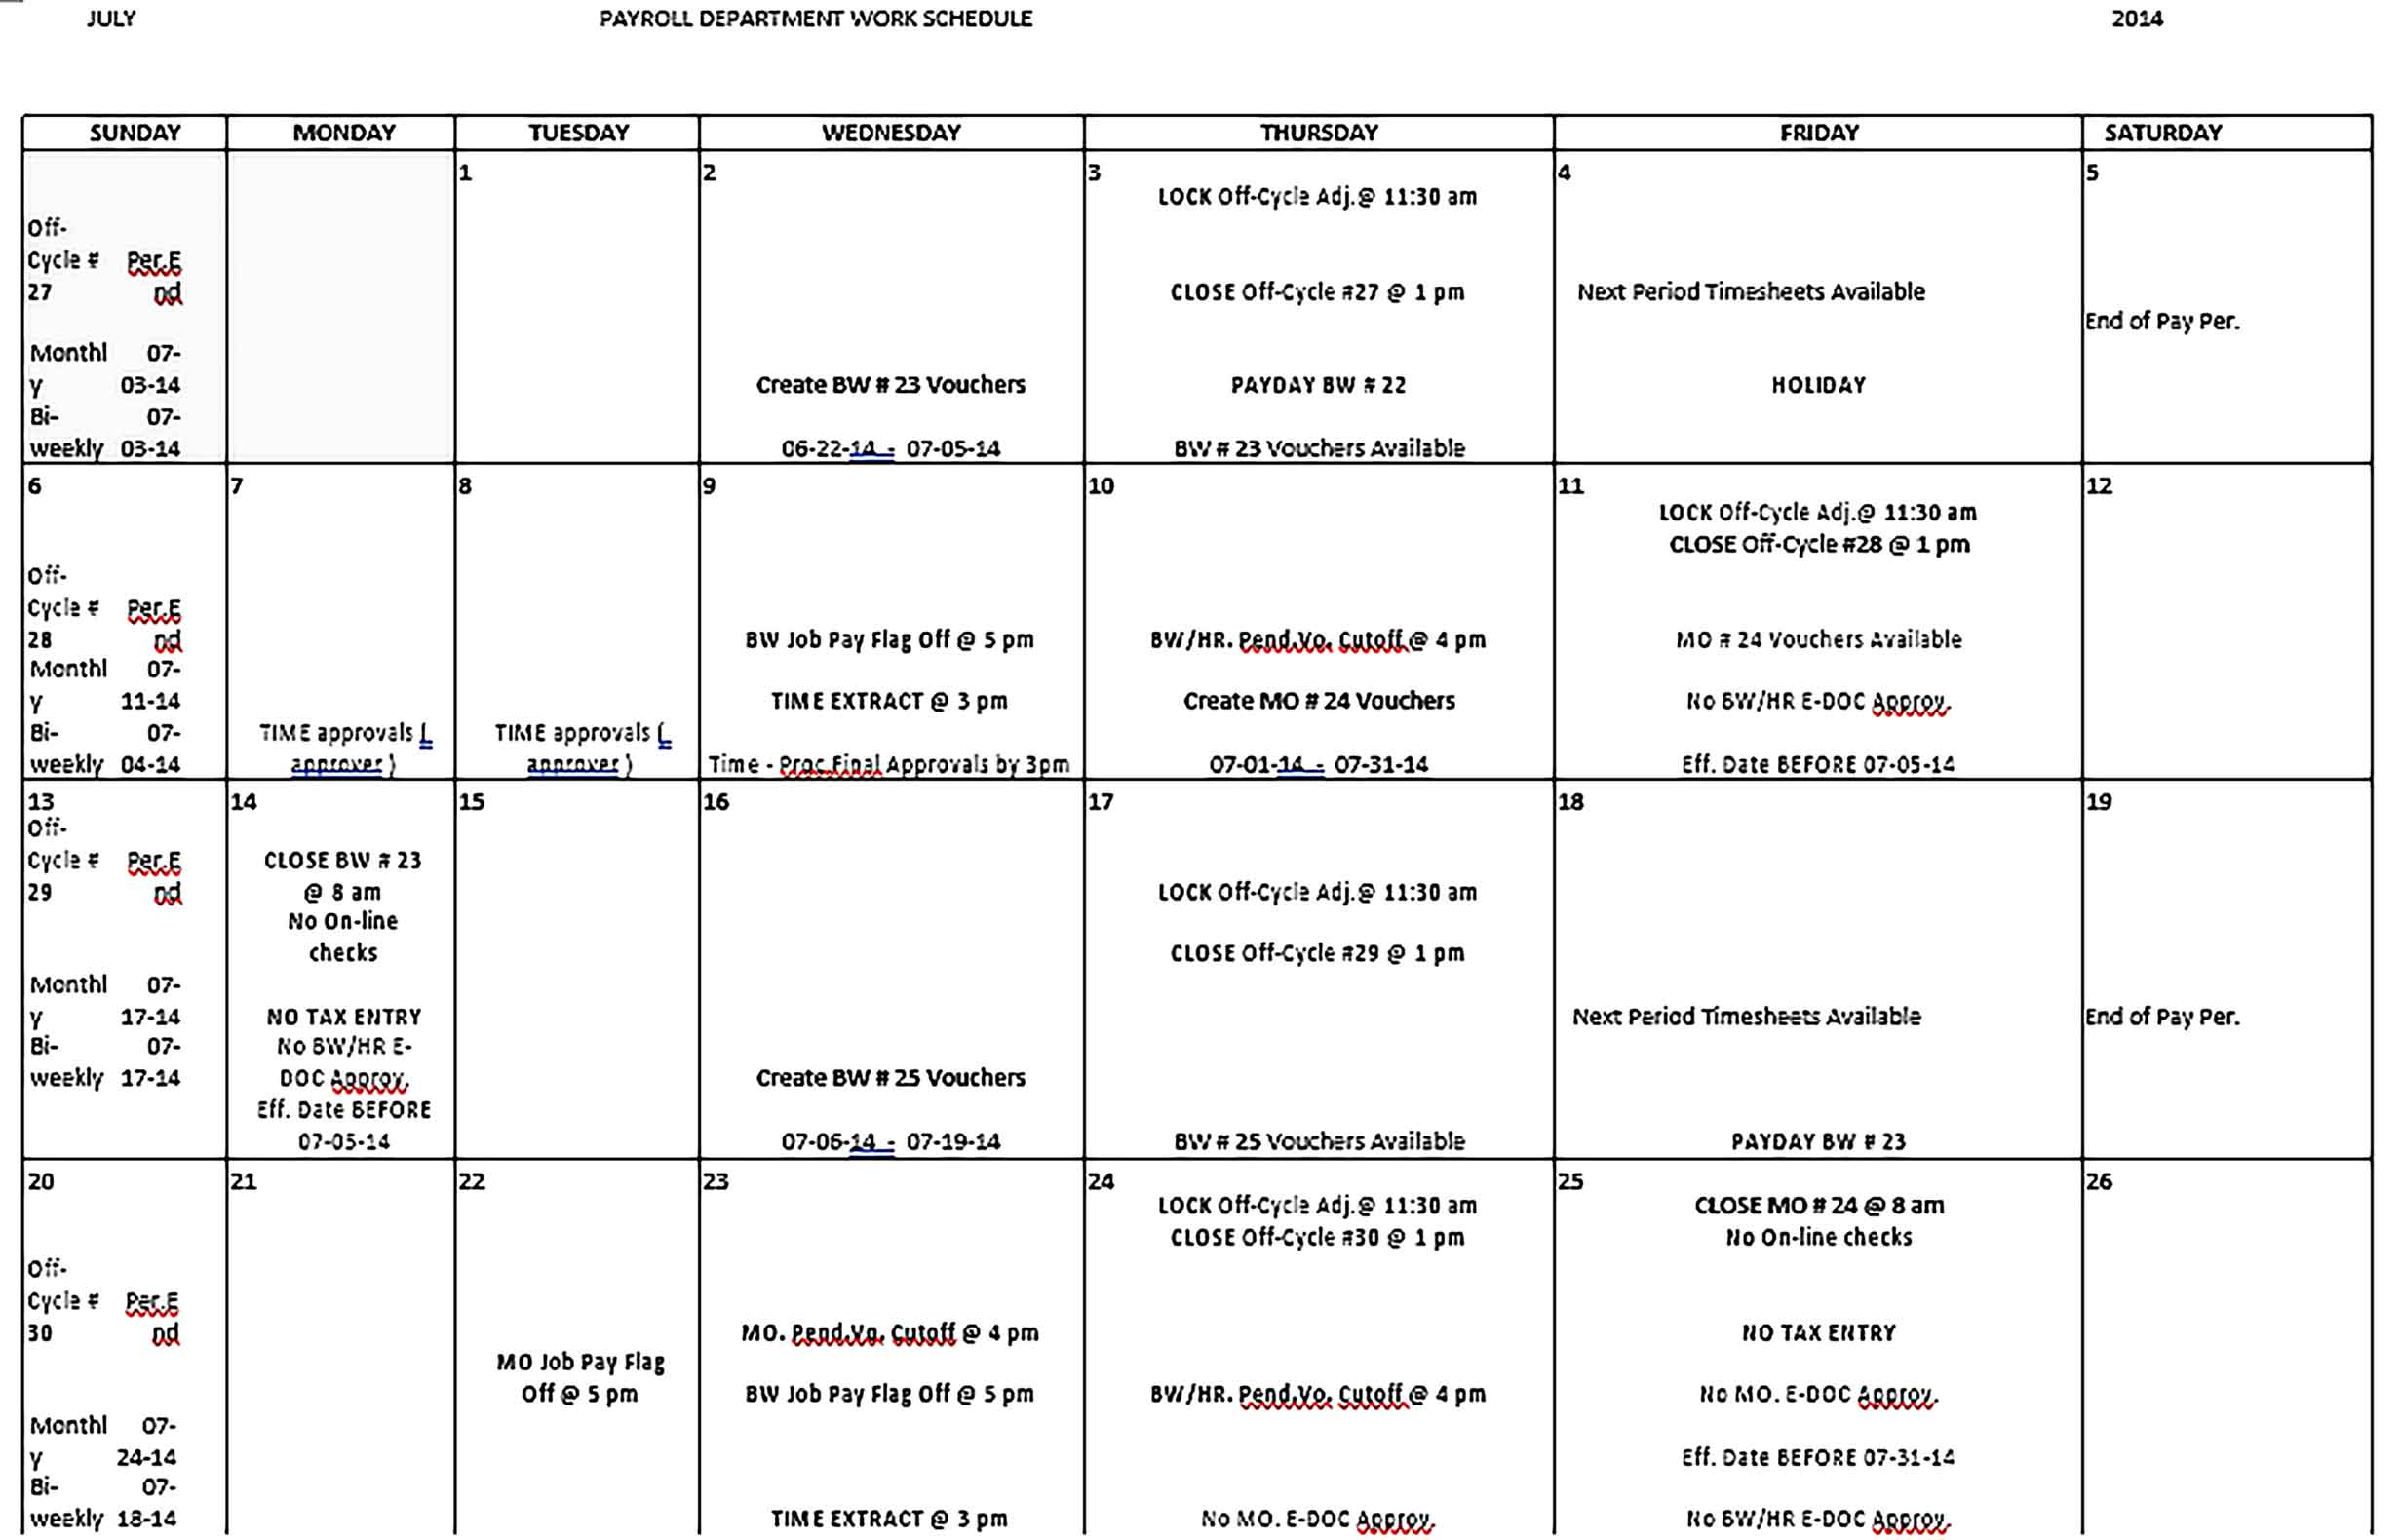 Template Payroll Department Monthly Work Schedule Sample